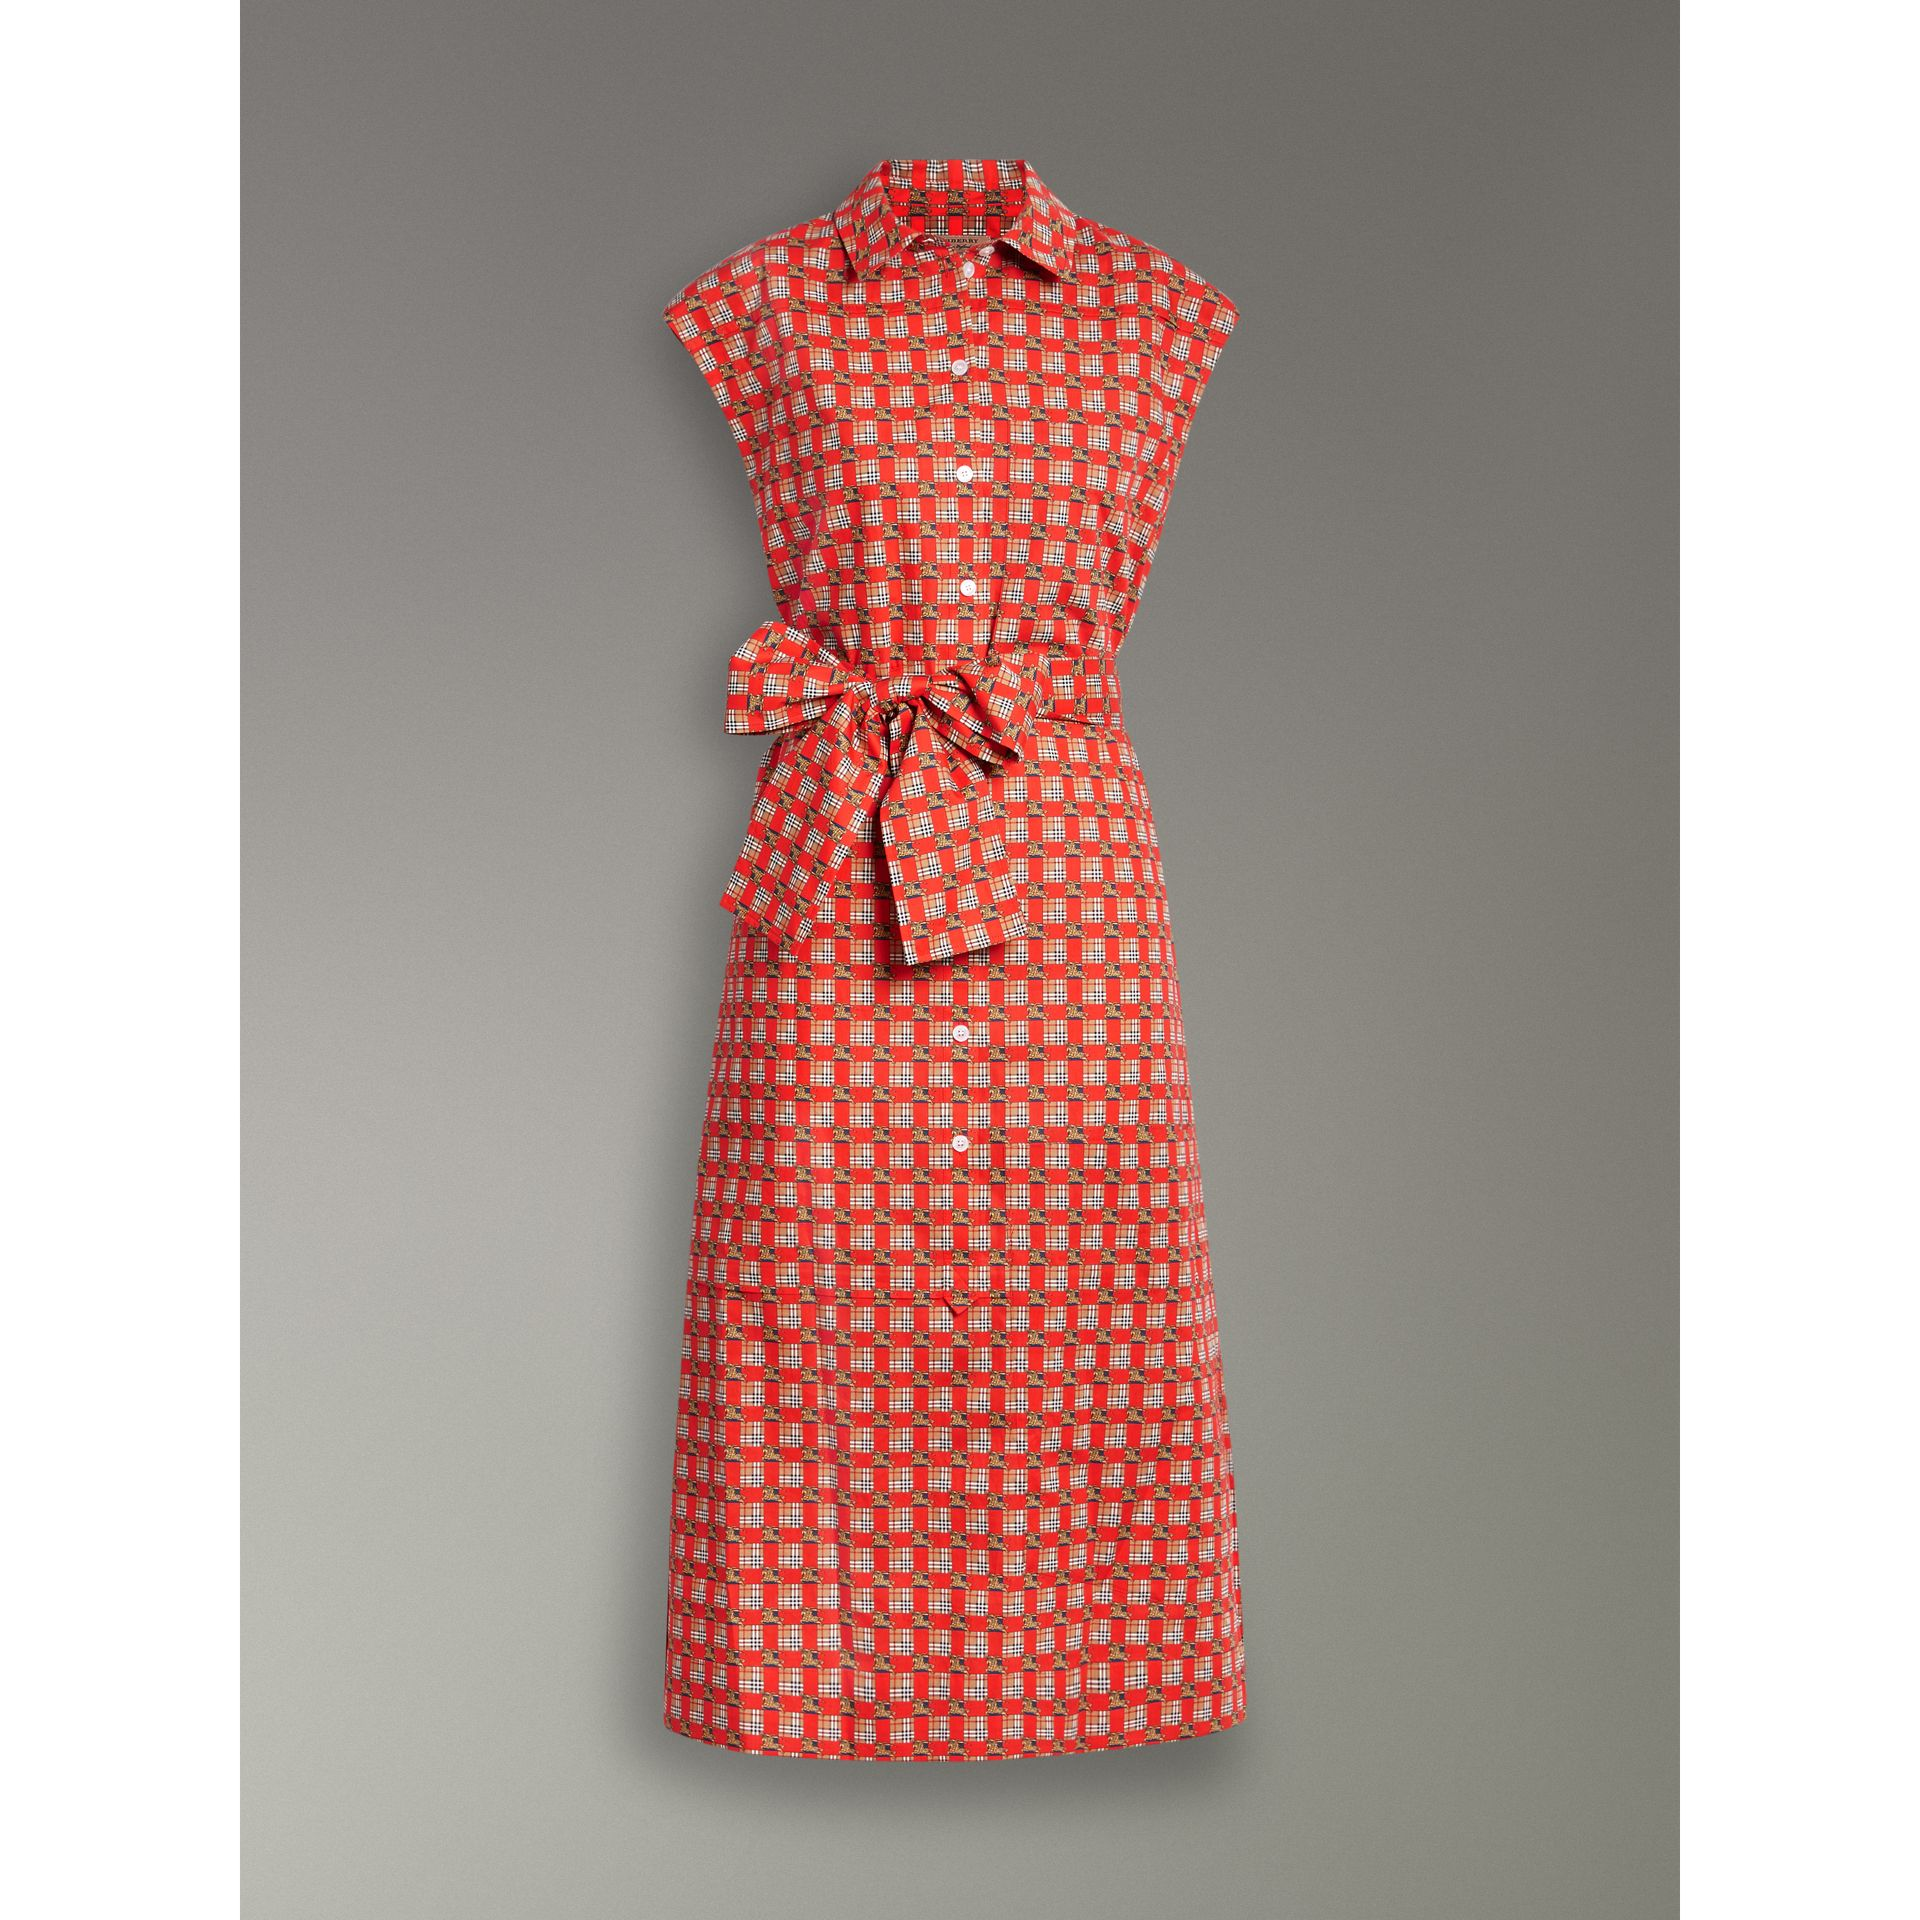 Tiled Archive Print Cotton Shirt Dress in Bright Red - Women | Burberry Australia - gallery image 3